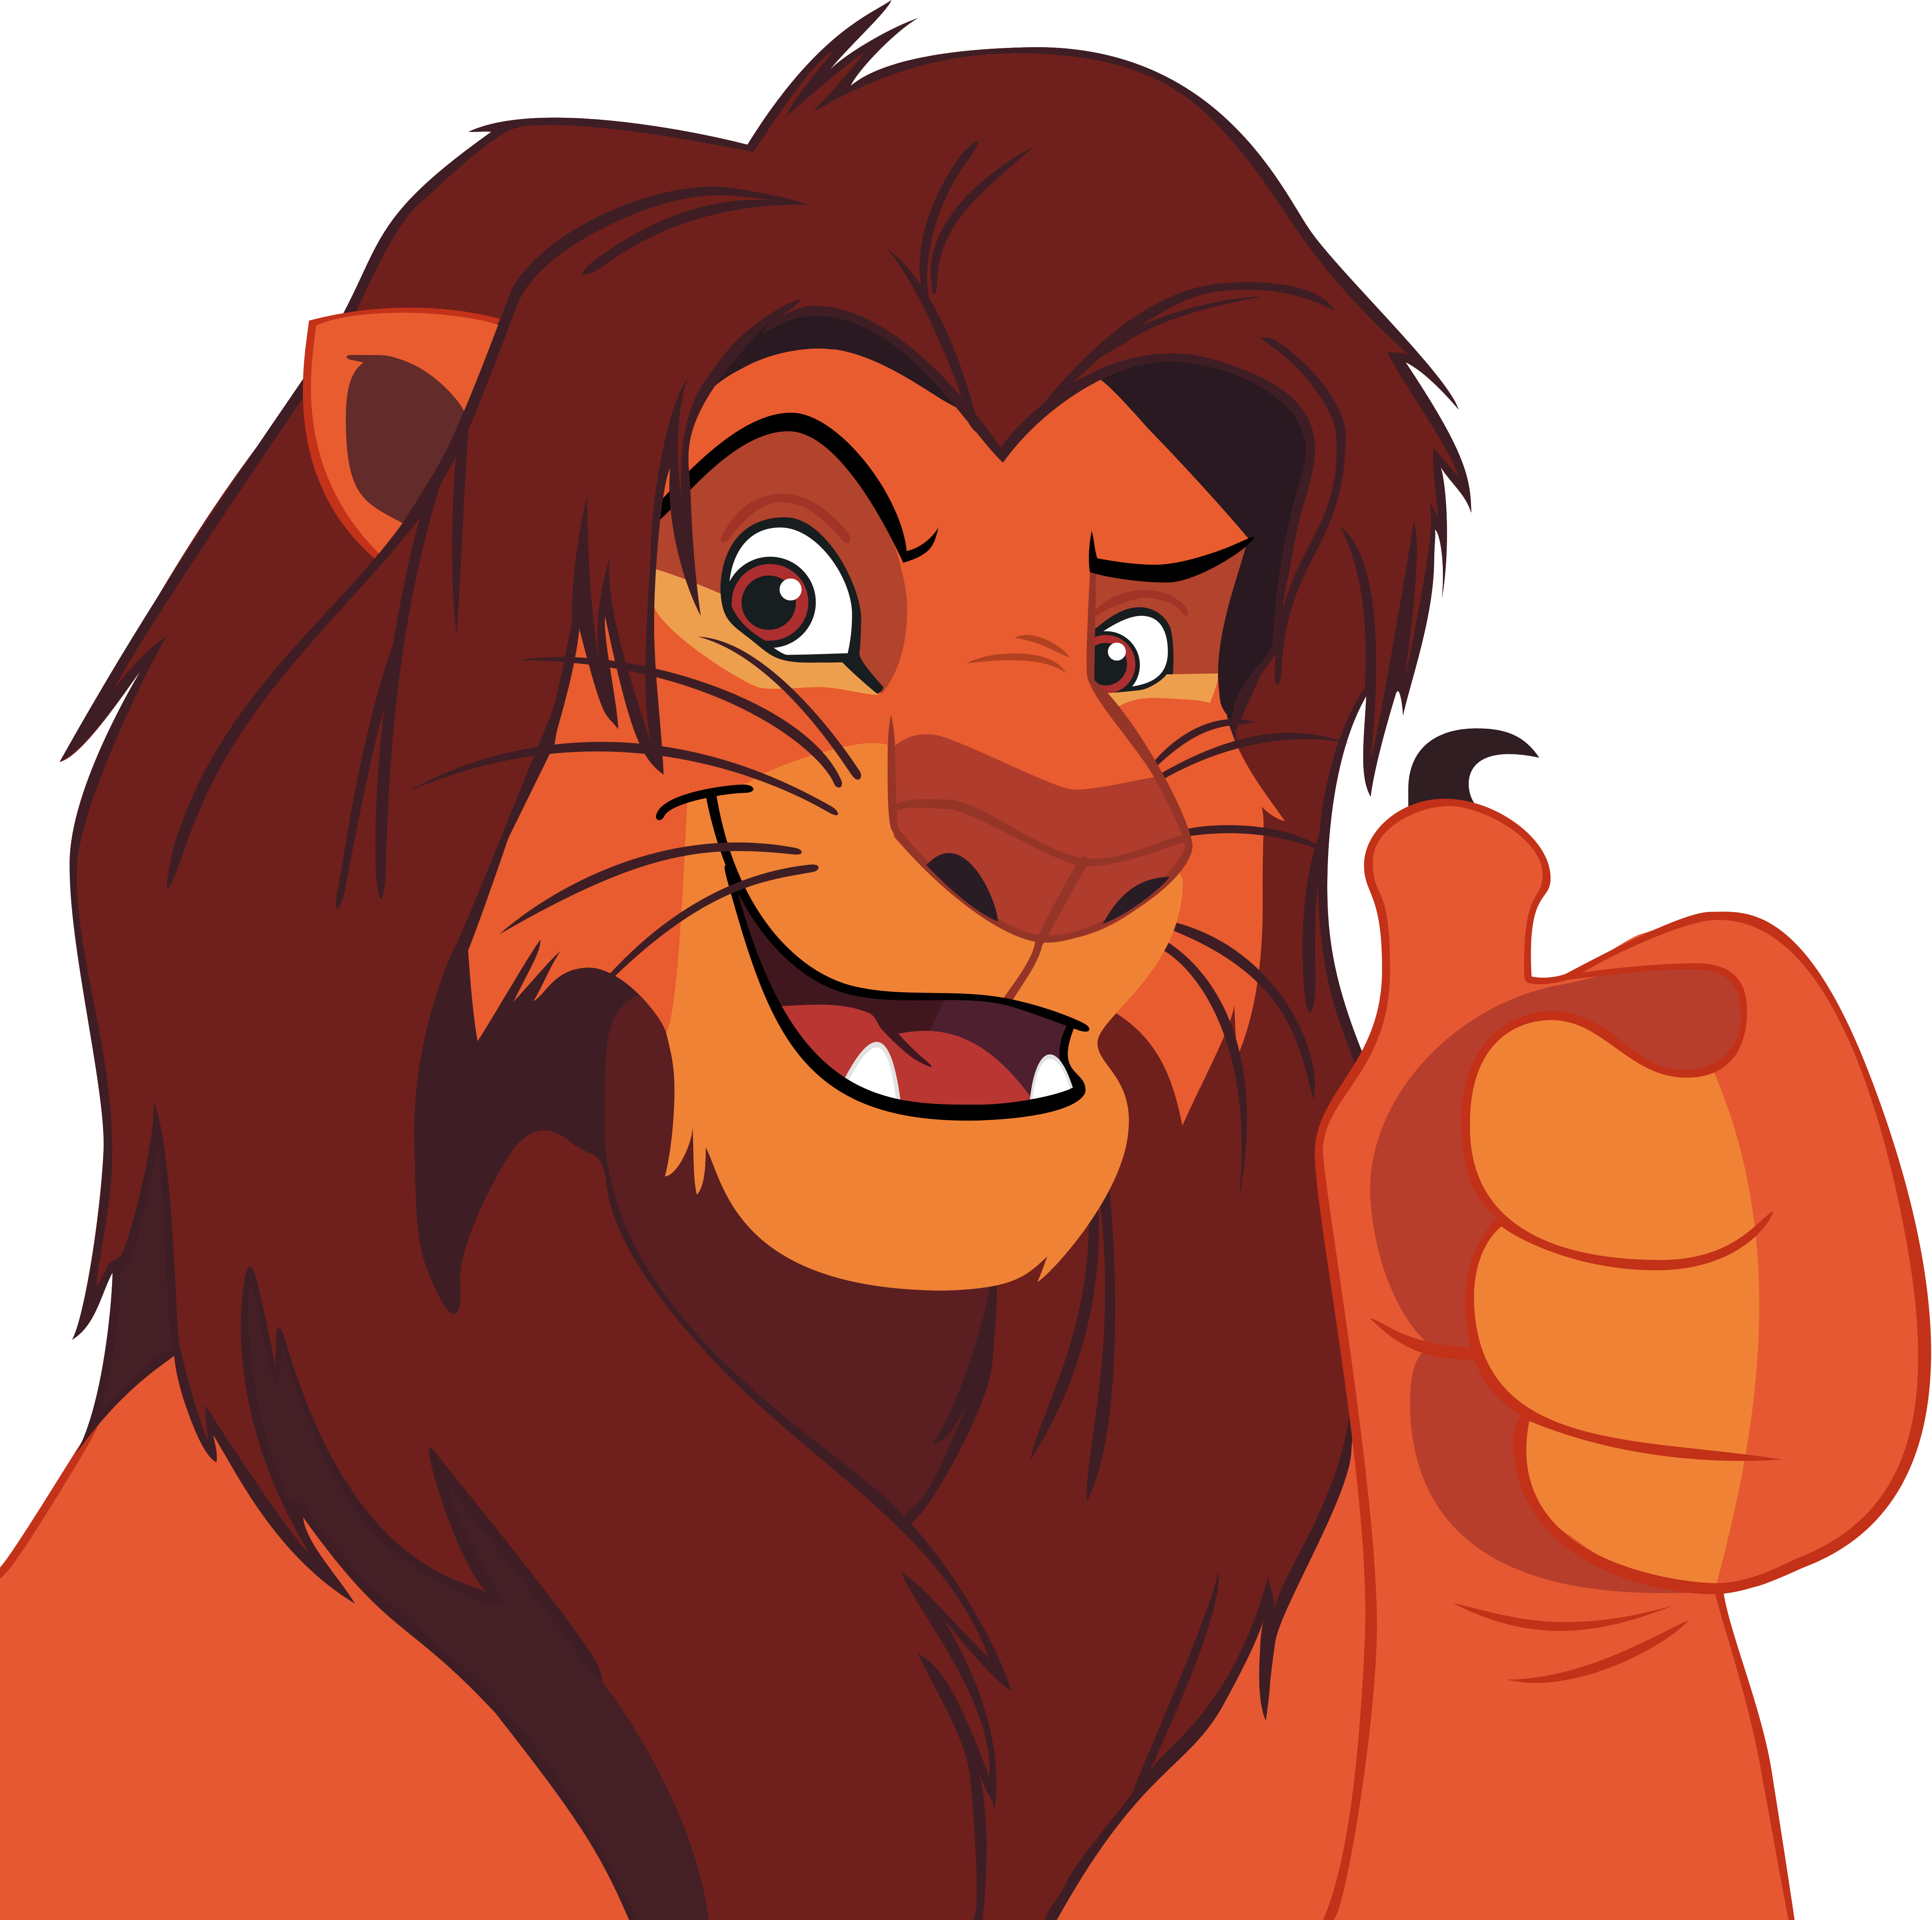 simba up thumbs - ClipArt Best - ClipArt Best